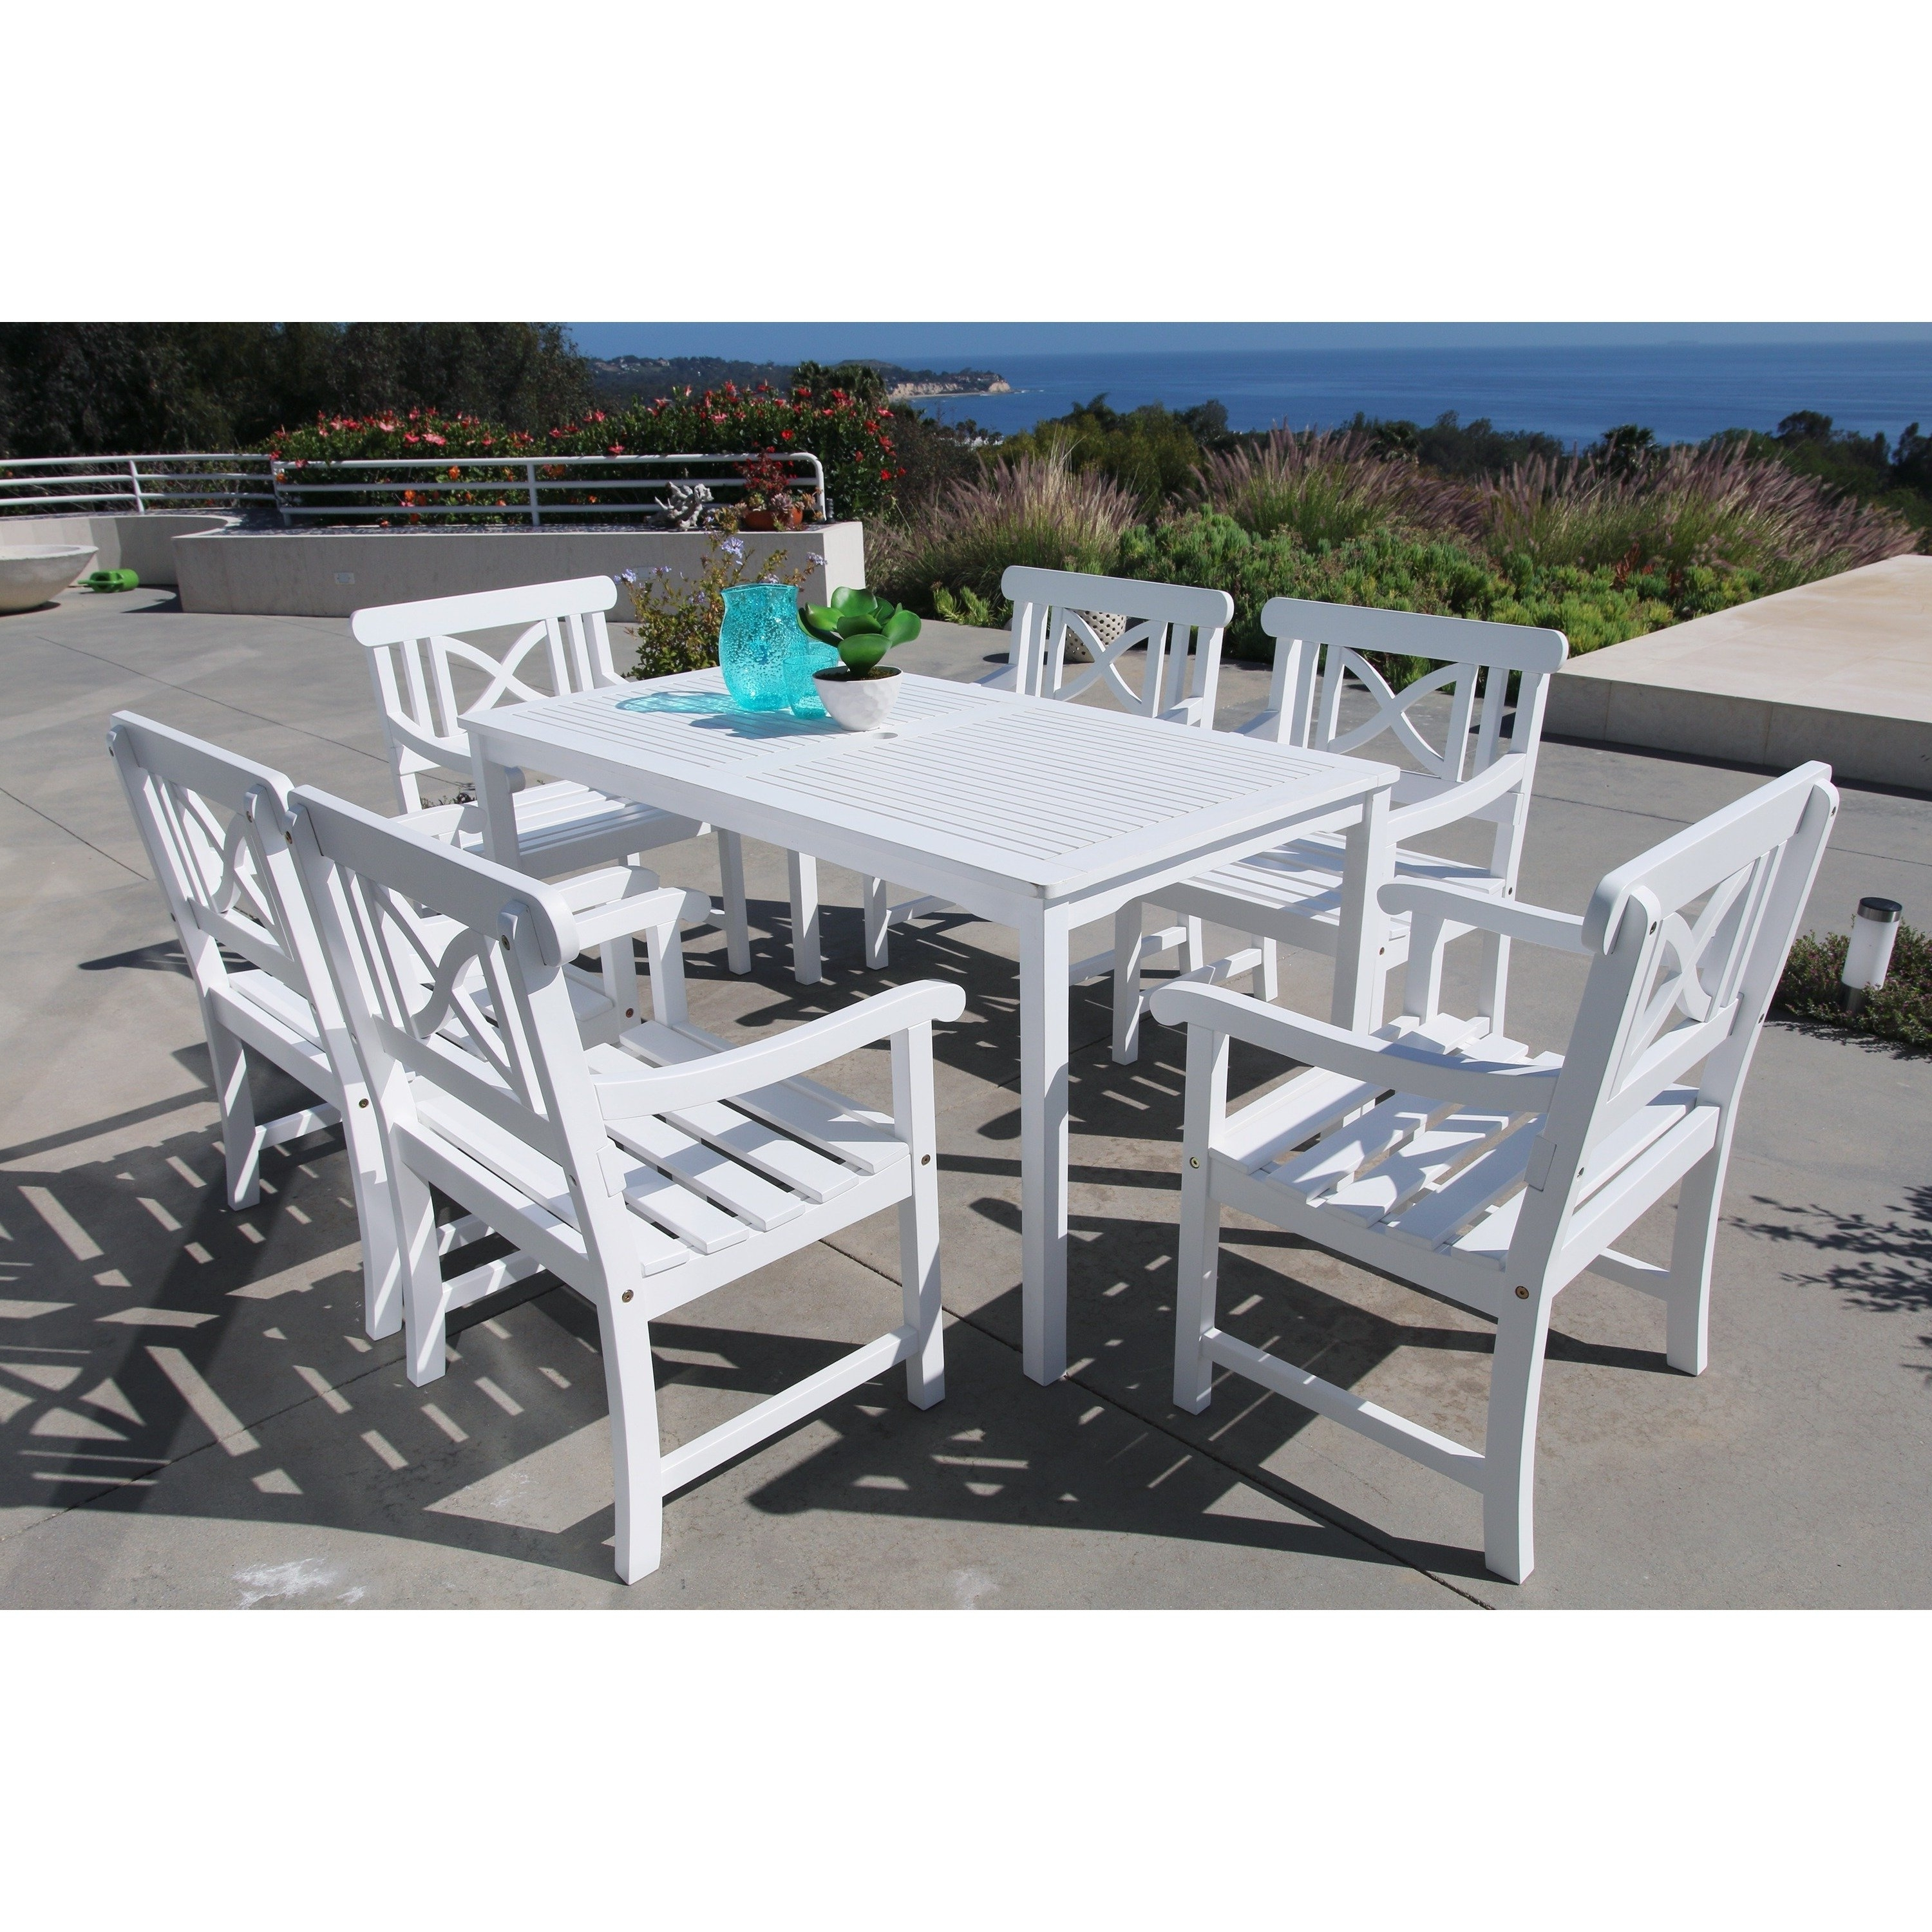 Preferred Candice Ii 7 Piece Extension Rectangular Dining Sets With Uph Side Chairs Throughout Shop The Gray Barn Bluebird 7 Piece Table And Arm Chair Outdoor (View 19 of 25)